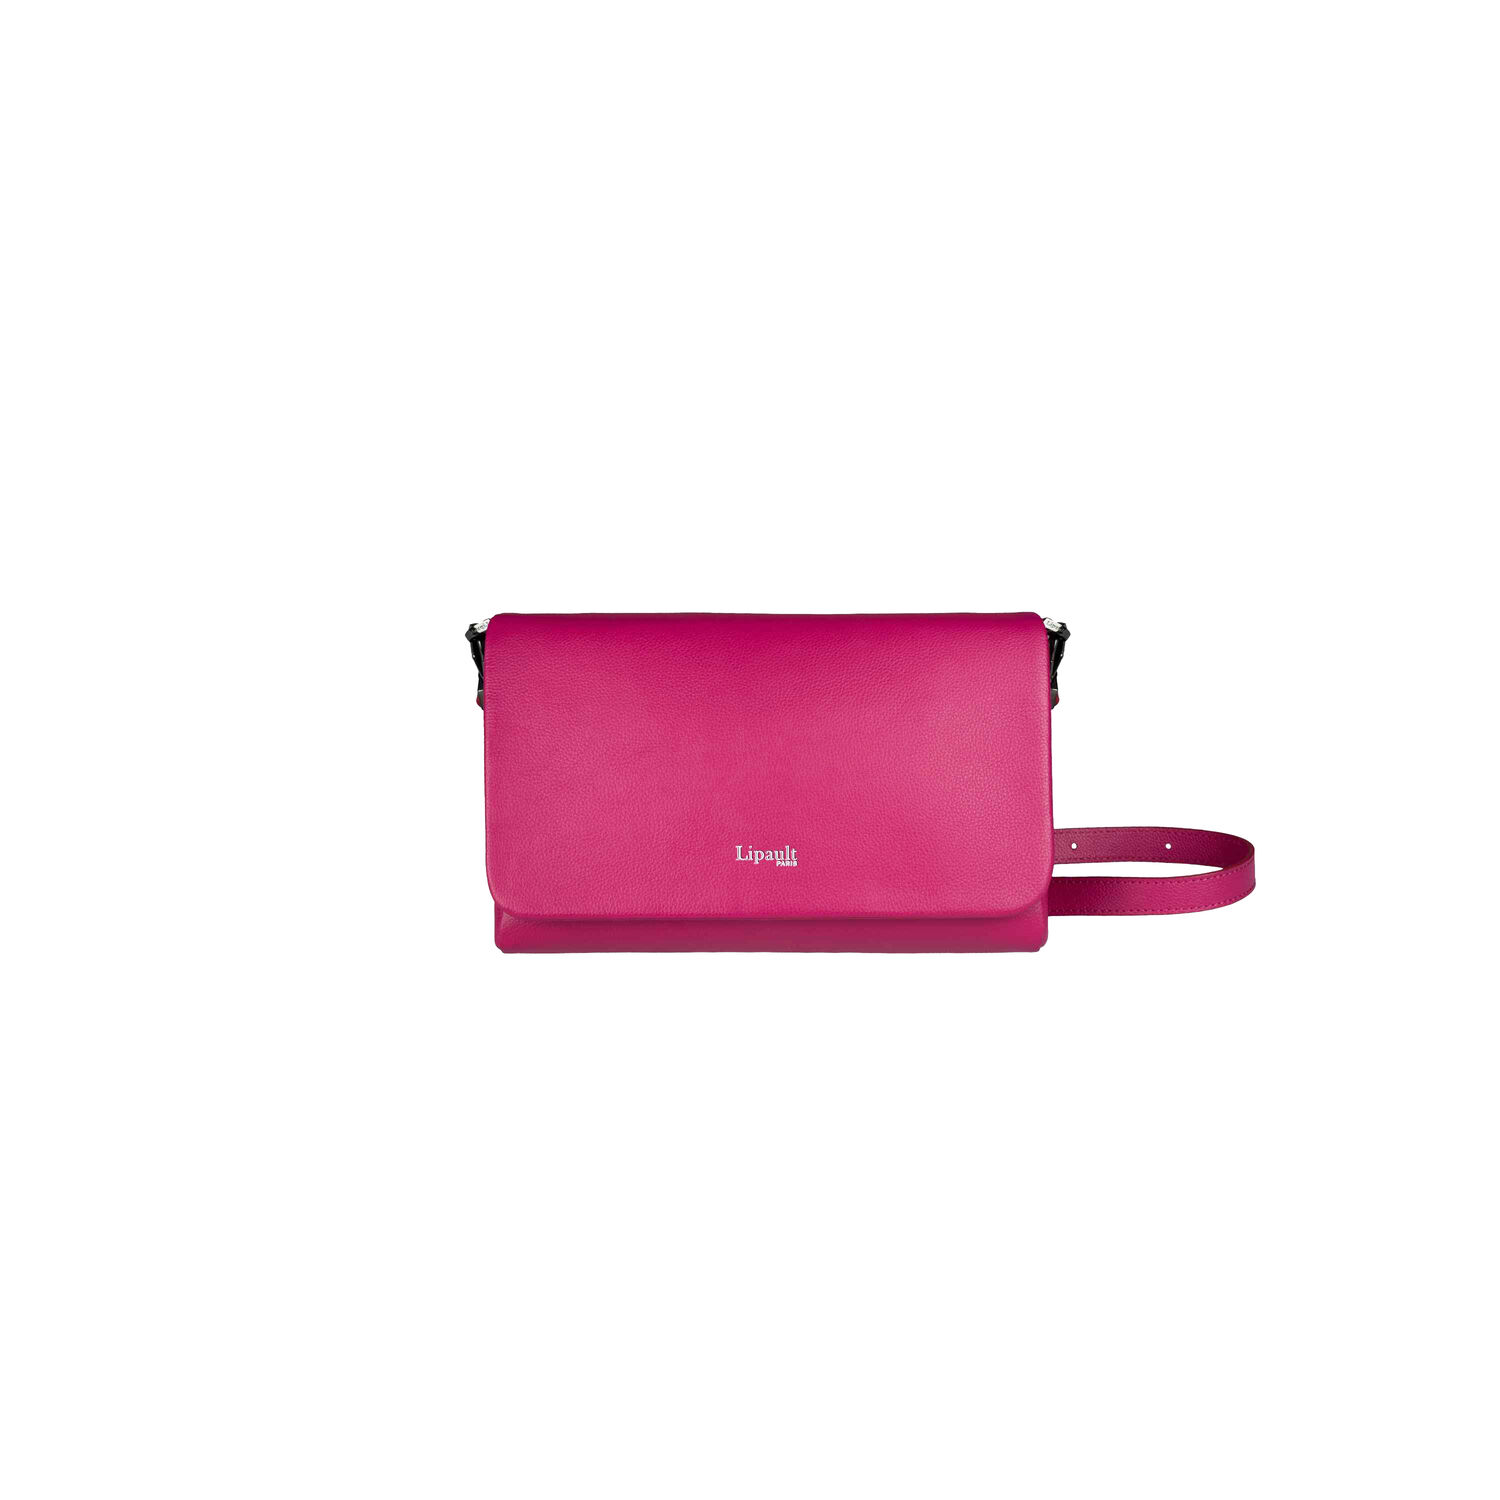 598a3c2ec3bc Lipault Plume Elegance Clutch Bag M in the color Tahiti Pink Leather.